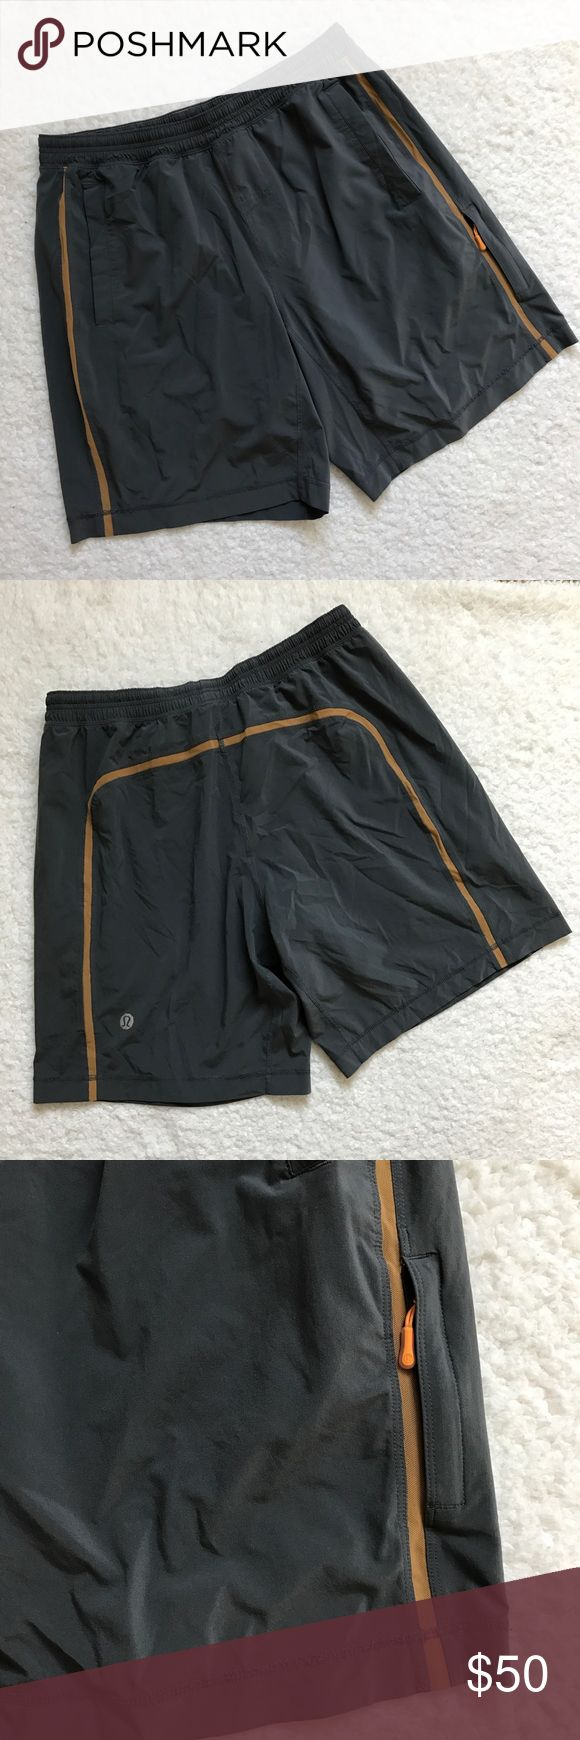 "Lululemon Men's Gray Athletic Shorts In good condition.  There are a few threads at the hem that are showing some wear.  This is not causing the hem to come undone.  Built in shorts lining.  Gray with orange mesh stripe.  Elastic waist with drawstring.  Size XL.  Inseam is 9"". lululemon athletica Shorts Athletic"